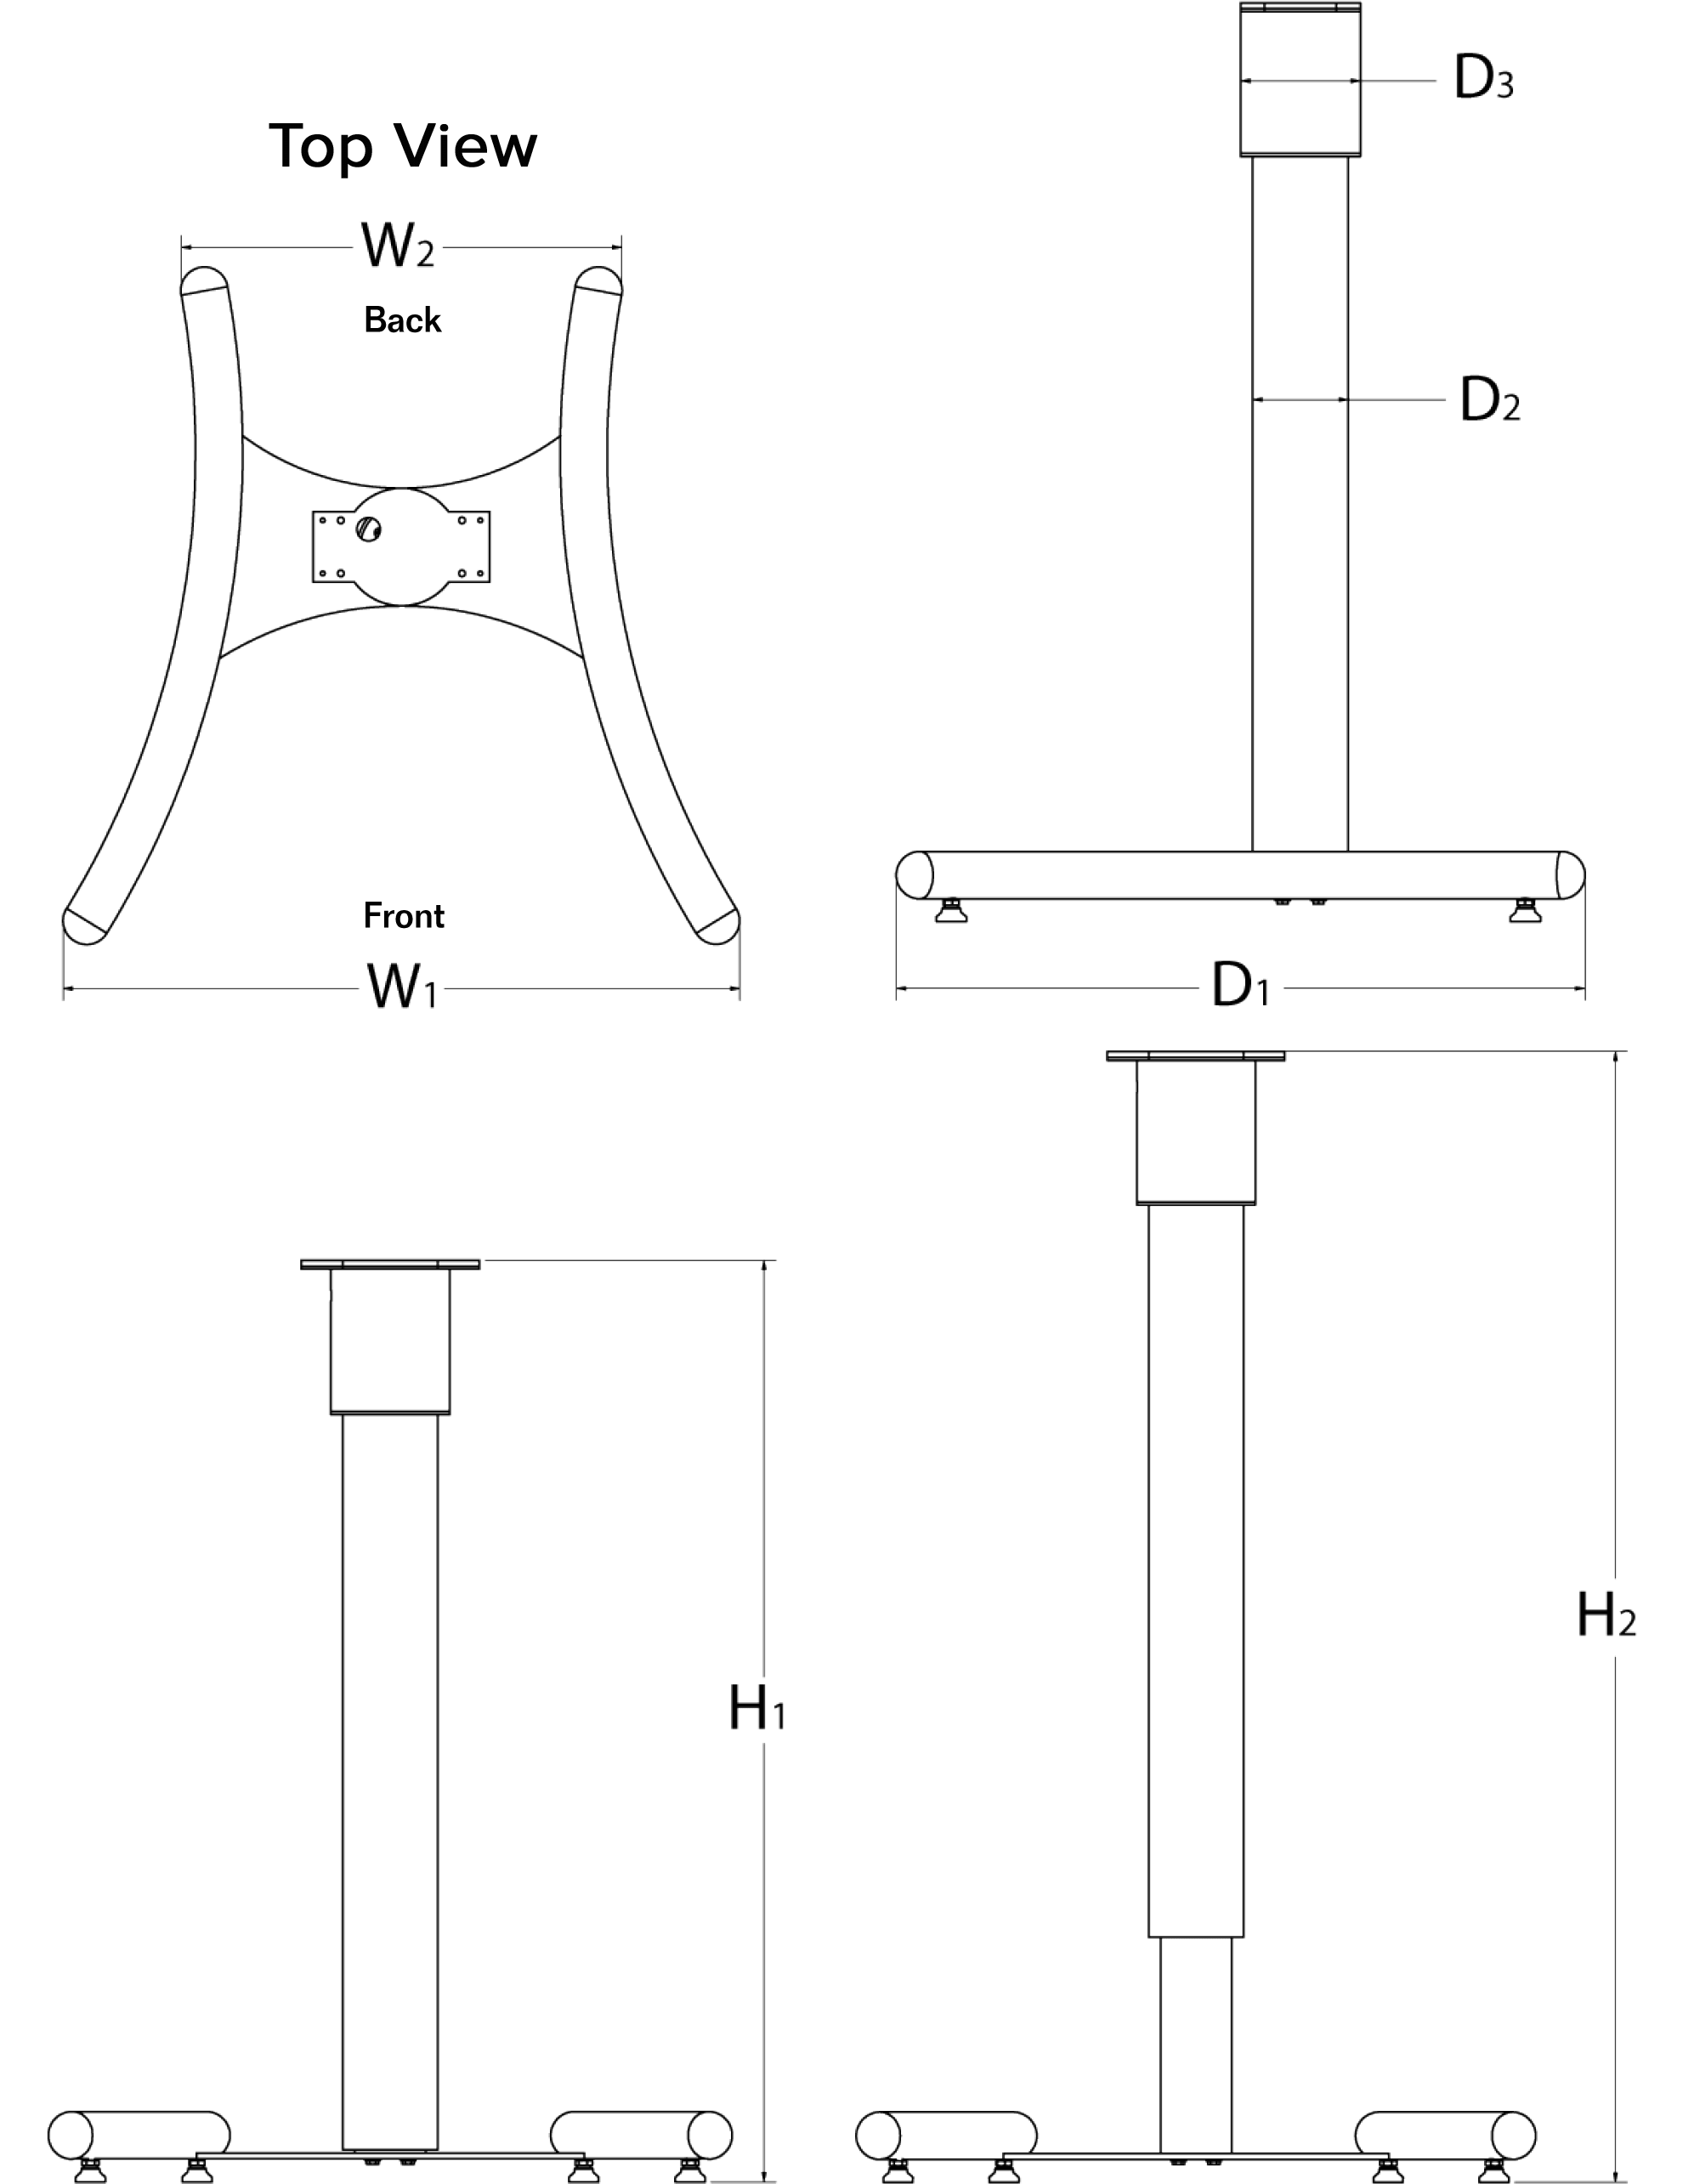 Pedestal drawing simple. Adjustable nema x series